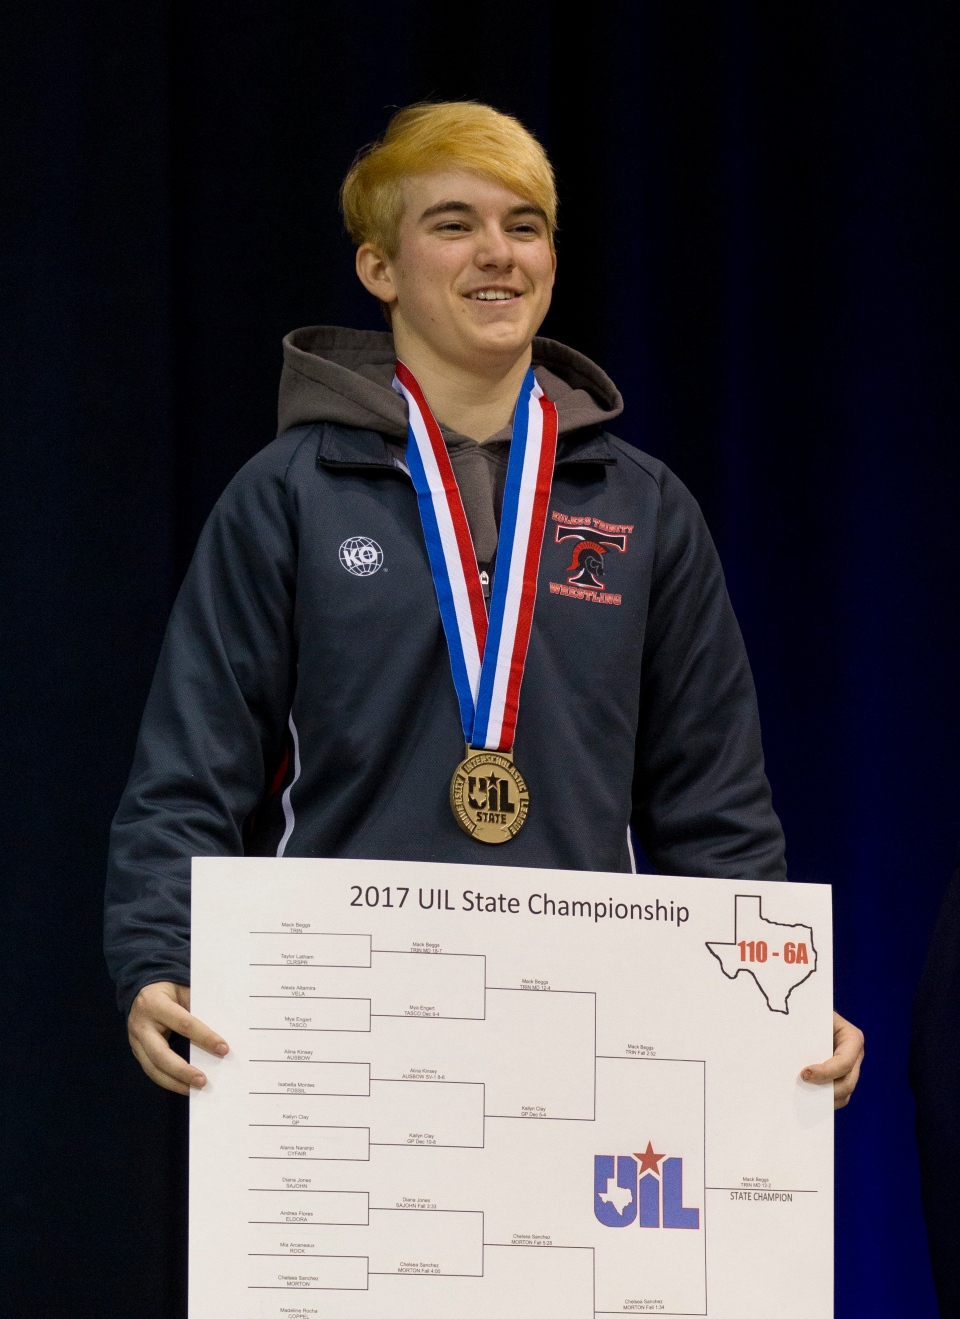 Euless Trinity's Mack Beggs holds a poster with the bracket, after defeating Morton Ranch's Chelsea Sanchez in the girls' Class 6A final at 110 pounds in the state wrestling championships Saturday, Feb. 25, 2017, in Cypress, Texas. Beggs was born female and is transitioning to male but wrestled in the girls division. (Jason Fochtman / Houston Chronicle via AP)